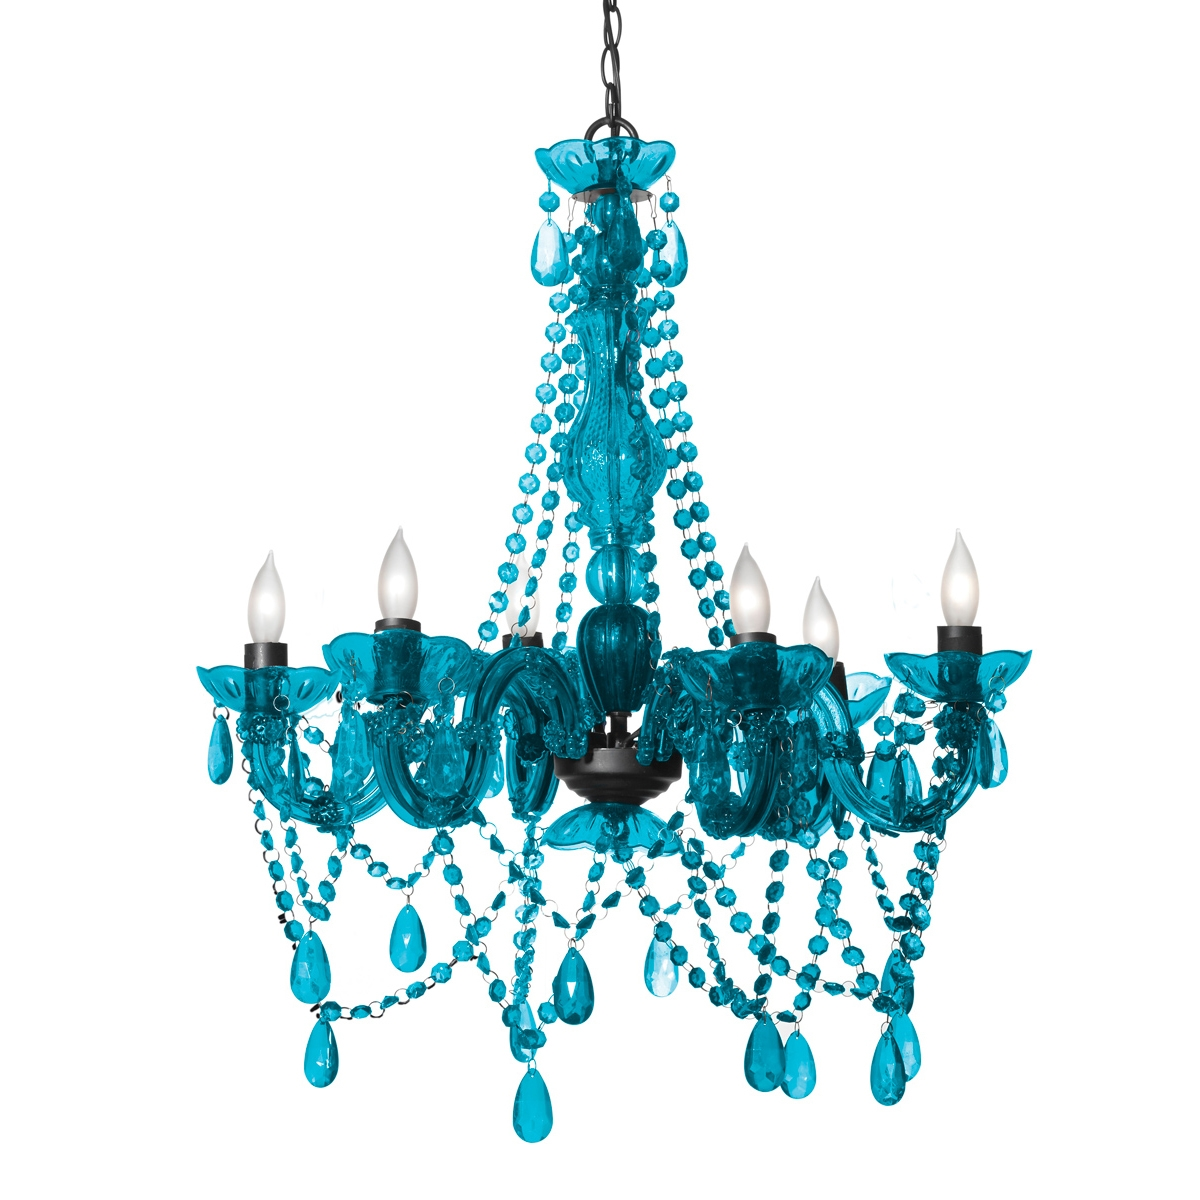 Turquoise Color Chandelier Intended For Turquoise Chandelier Crystals (Image 24 of 25)